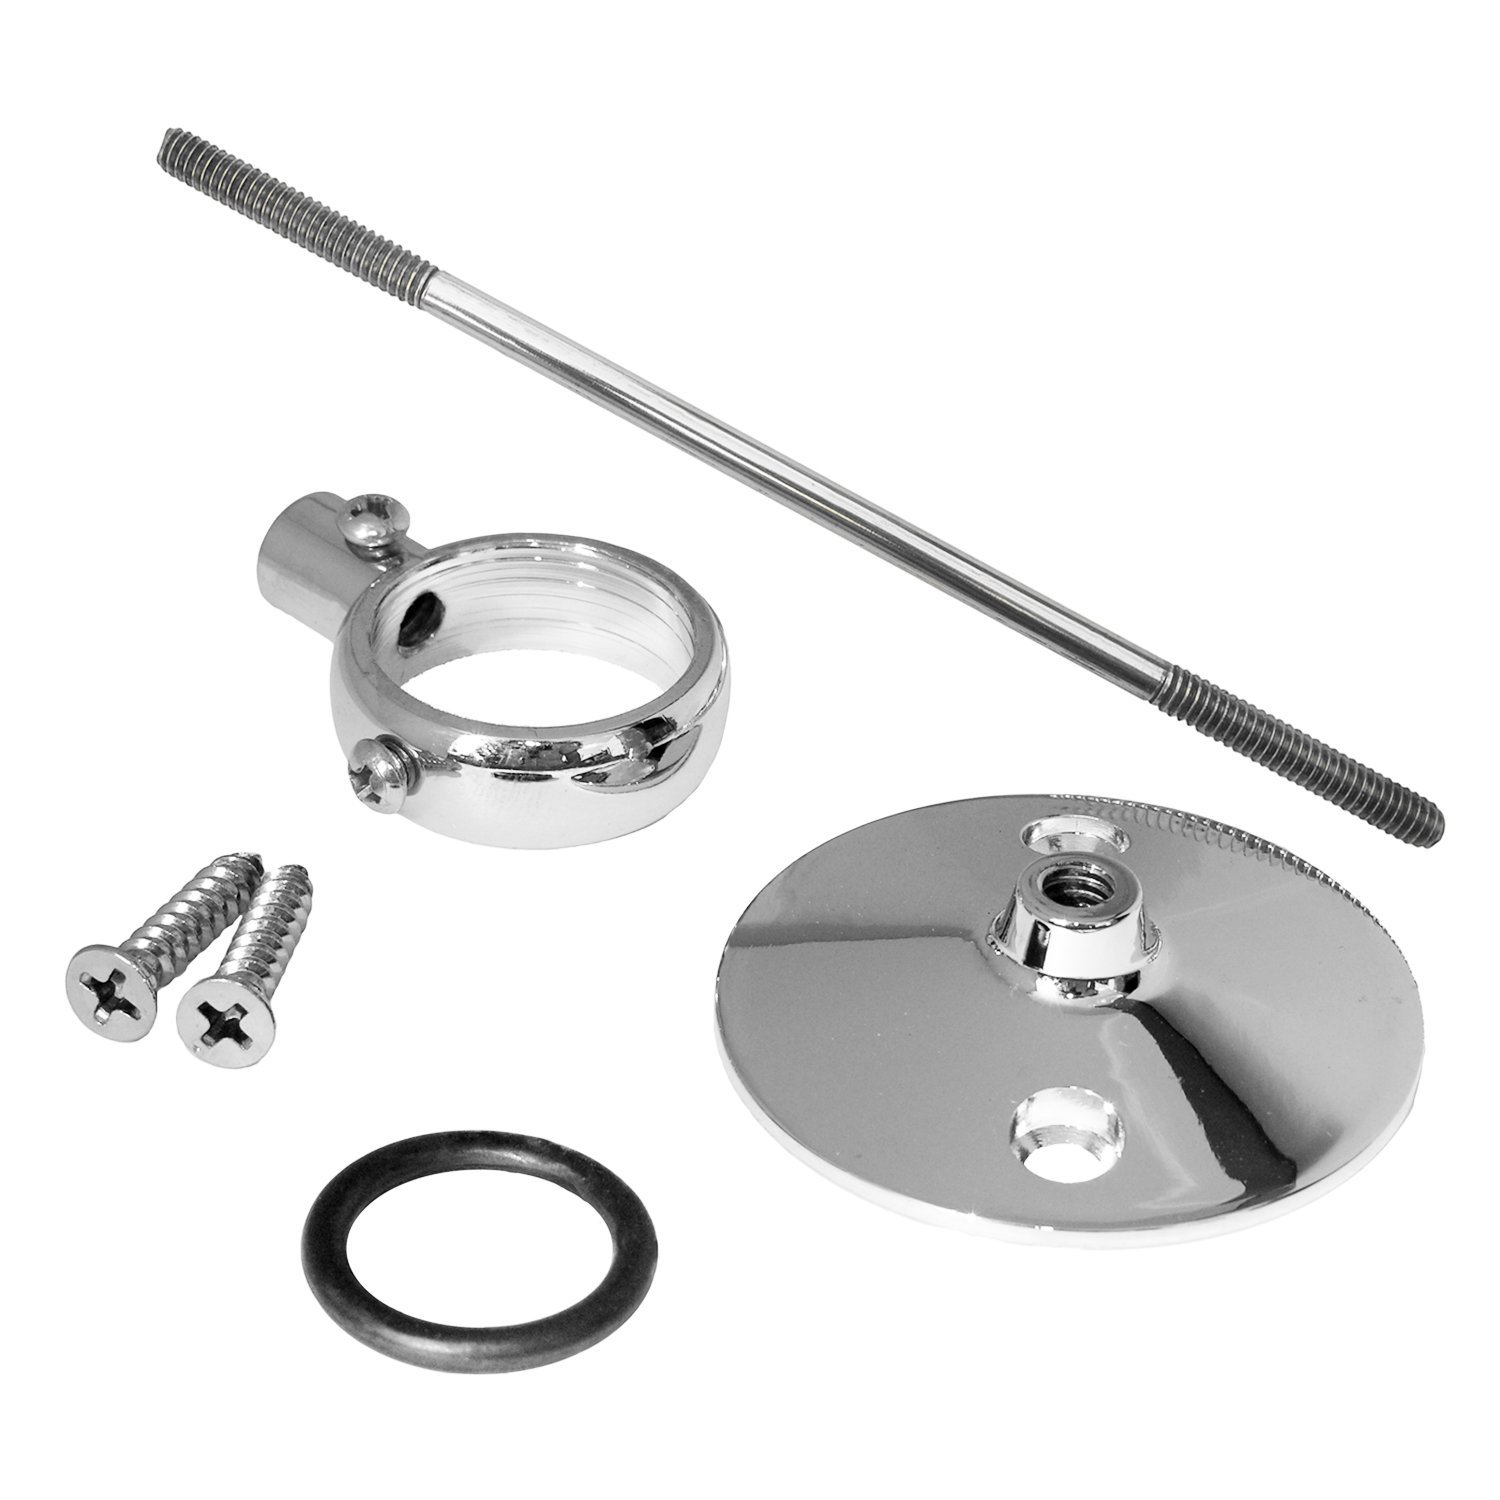 Buy Lasco 08 1099 Add A Shower Support Bracket With 6 Inch